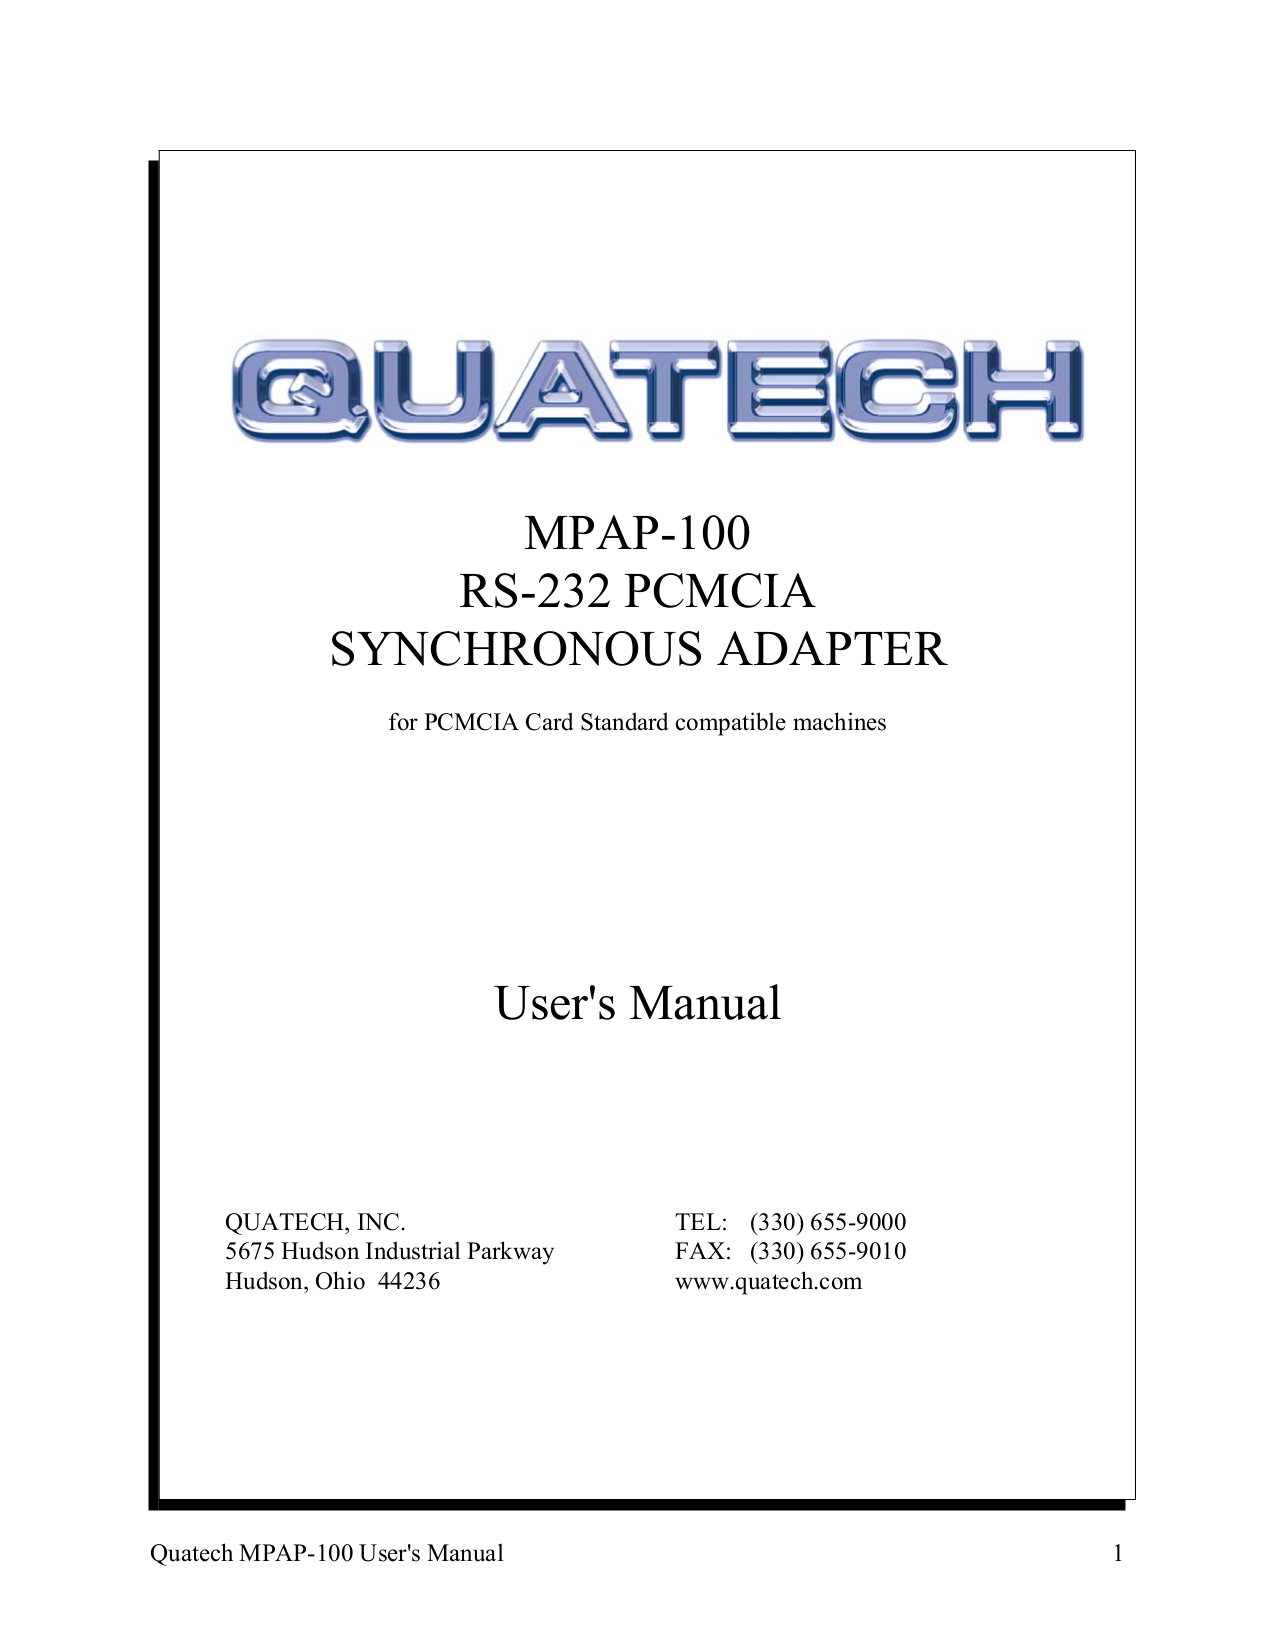 pdf for Quatech Other MPAP-100 PCMCIA Cards manual